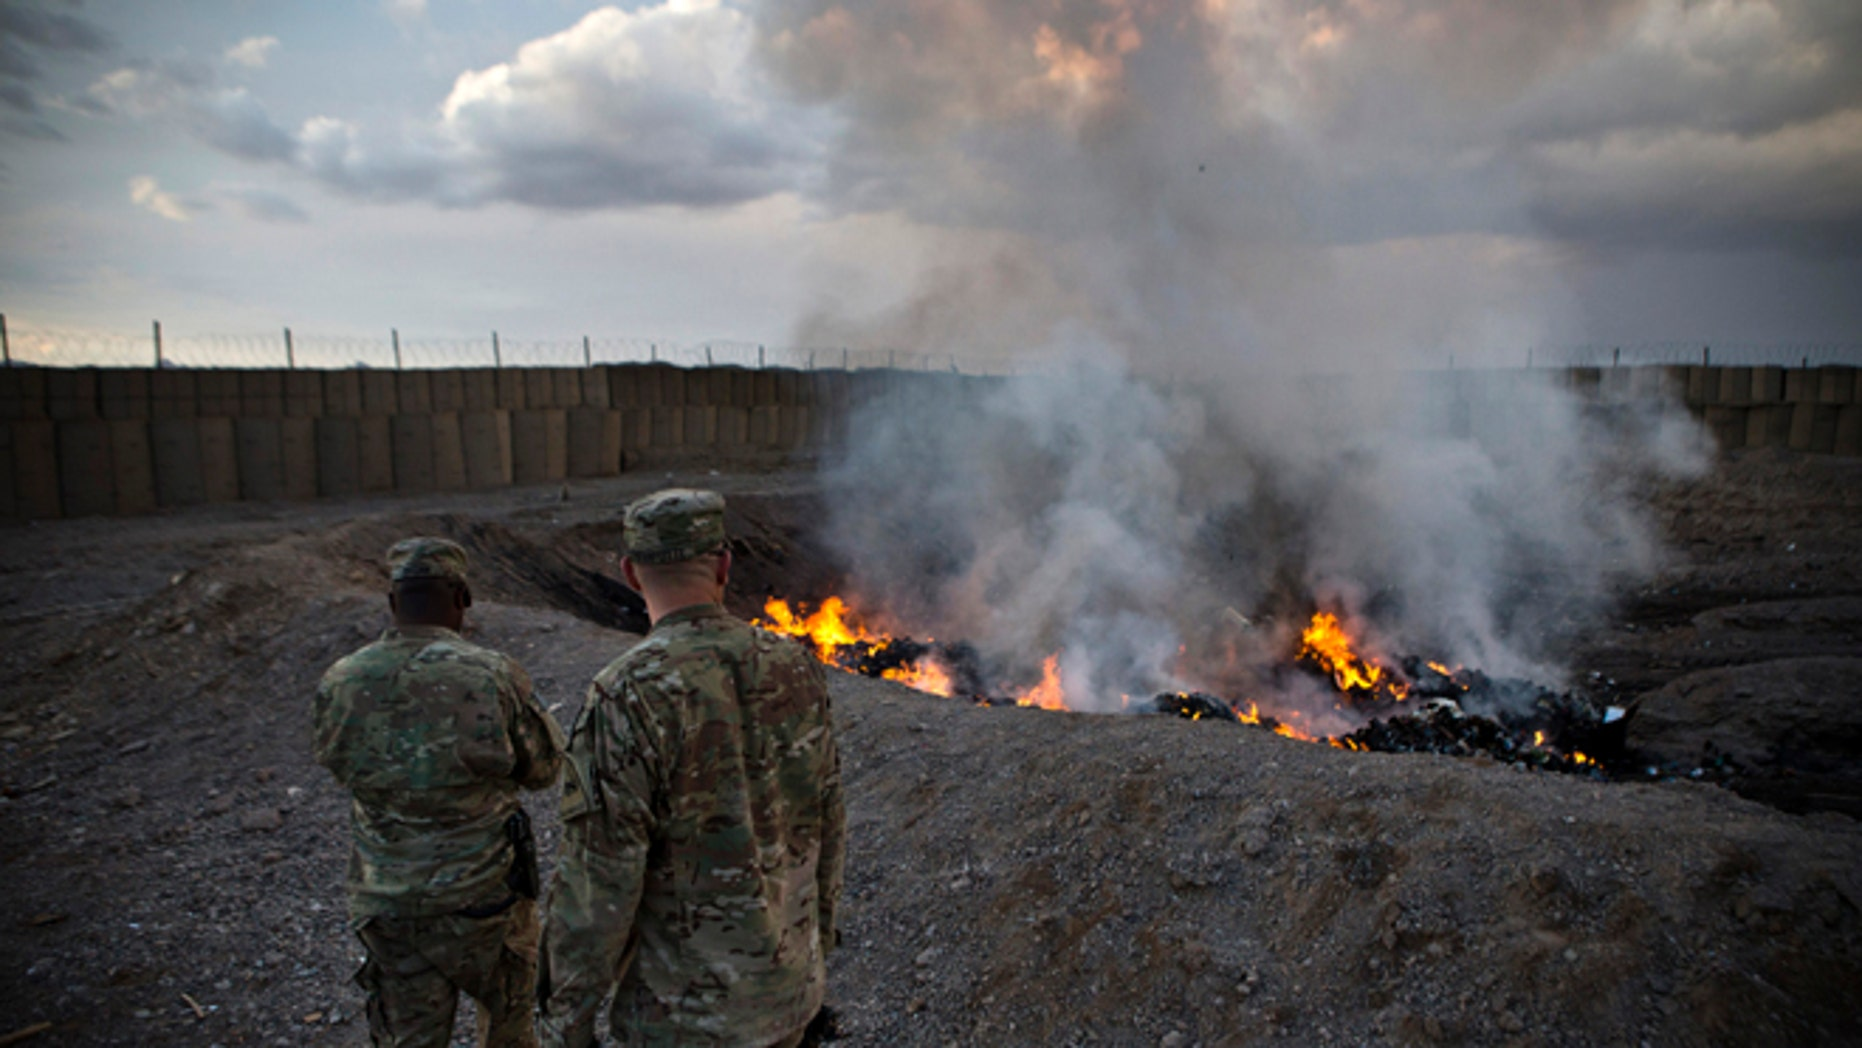 February 4, 2013: U.S. Army soldiers watch garbage burn in a burn-pit at Forward Operating Base Azzizulah in the Kandahar Province of Afghanistan.